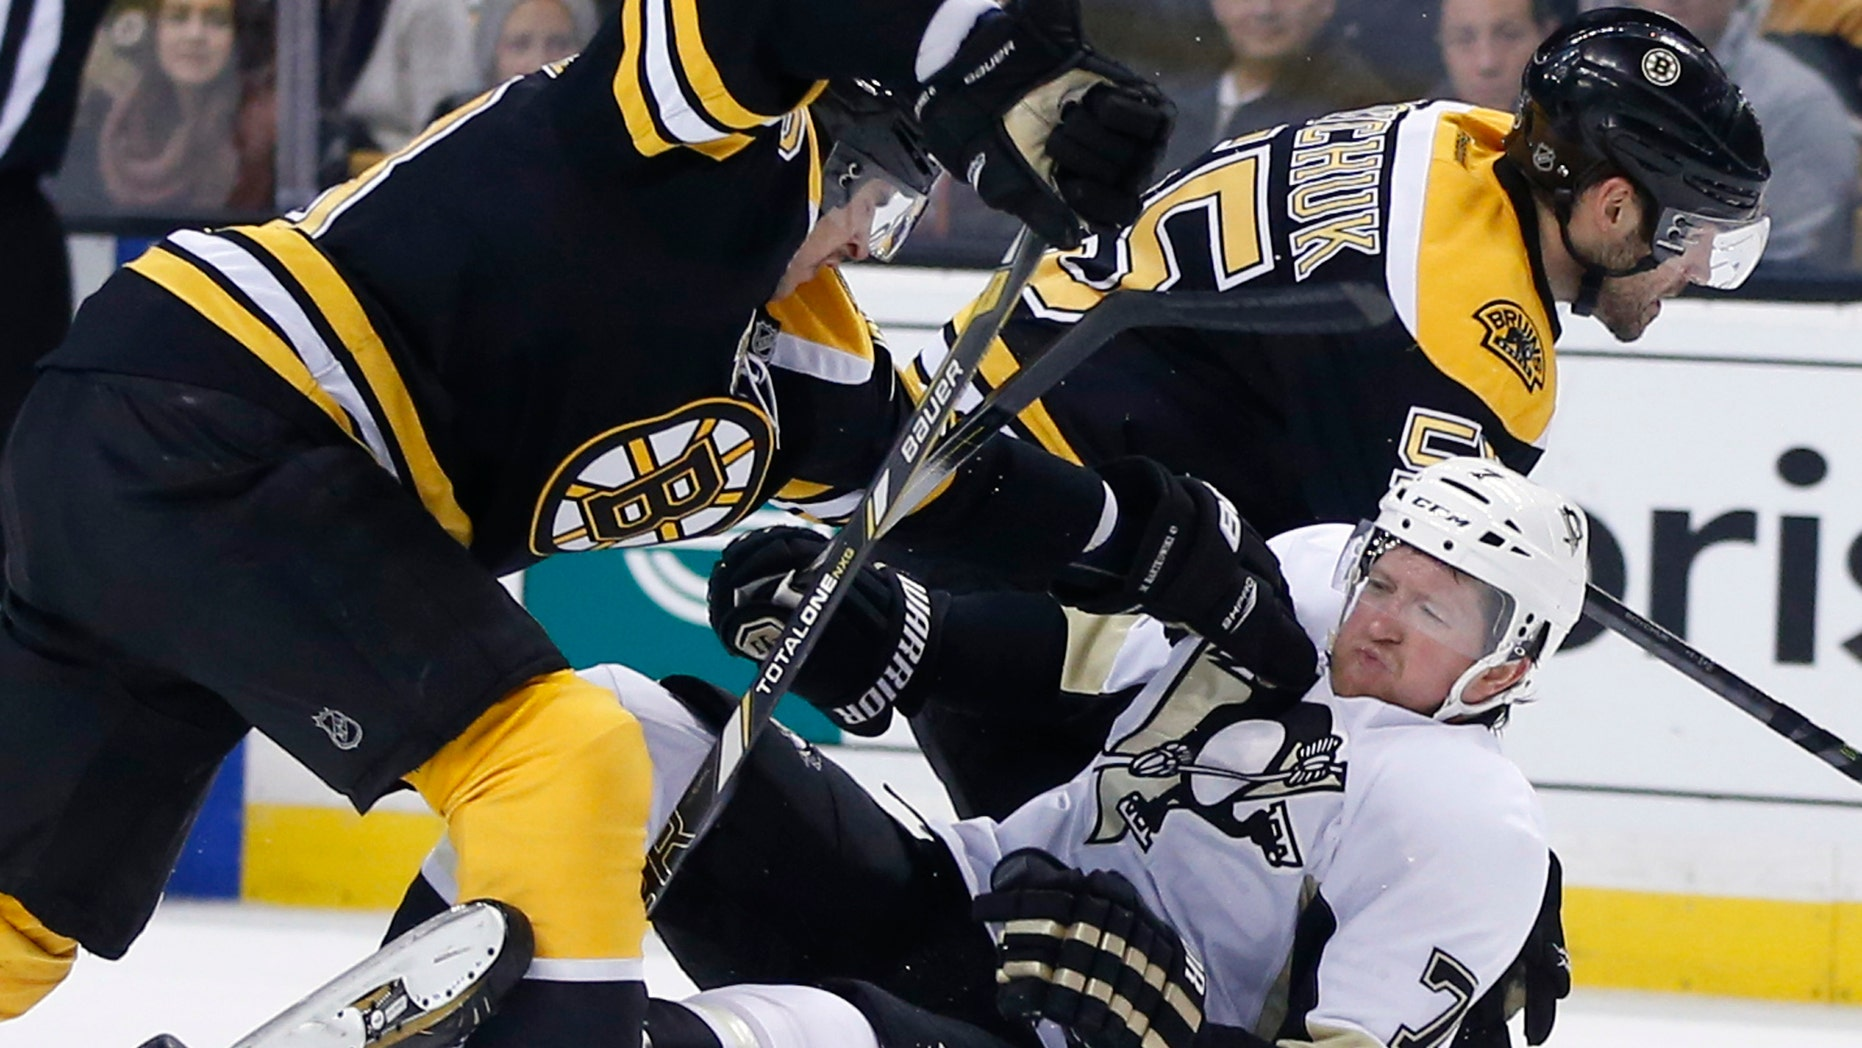 Pittsburgh Penguins defenseman Paul Martin (7) is knocked down by Boston Bruins defensemen Matt Bartkowski, left, and Johnny Boychuk (55) in the third period of an NHL hockey game in Boston, Monday, Nov. 25, 2013. The Bruins won 4-3 in overtime. (AP Photo/Elise Amendola)